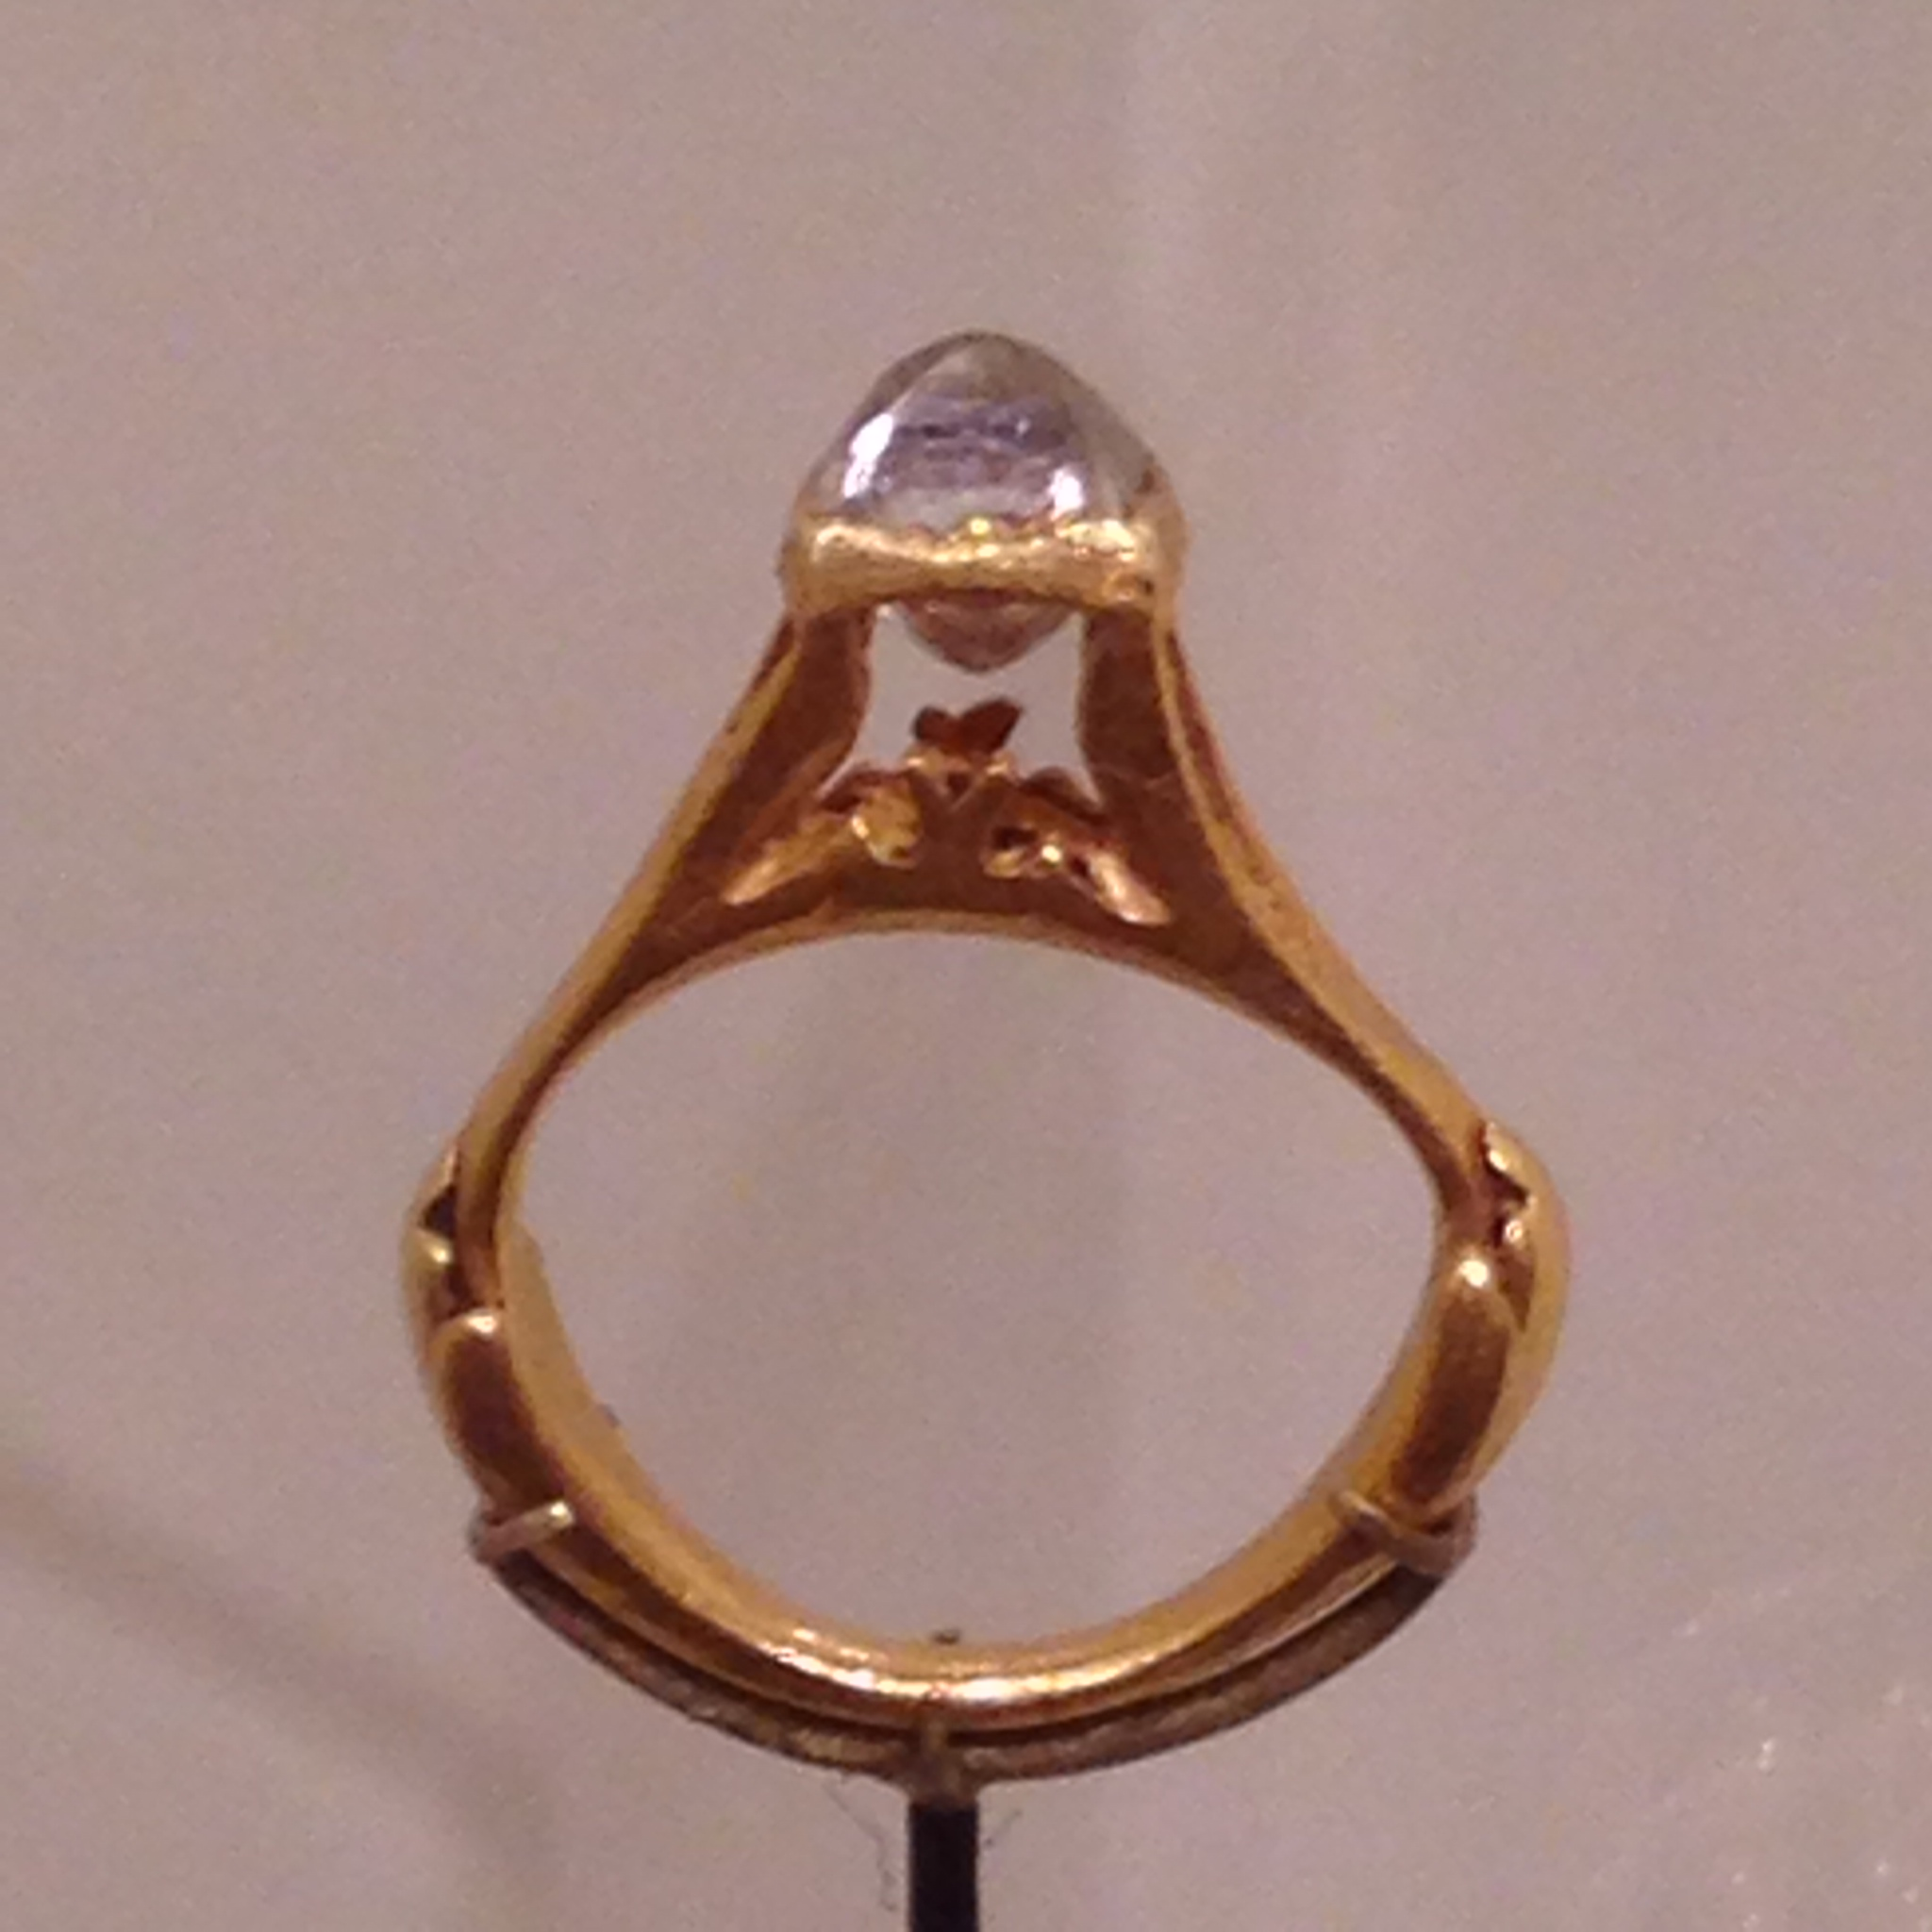 Roman octahedral diamond ring; Roman Empire, 3rd-4th century AD.